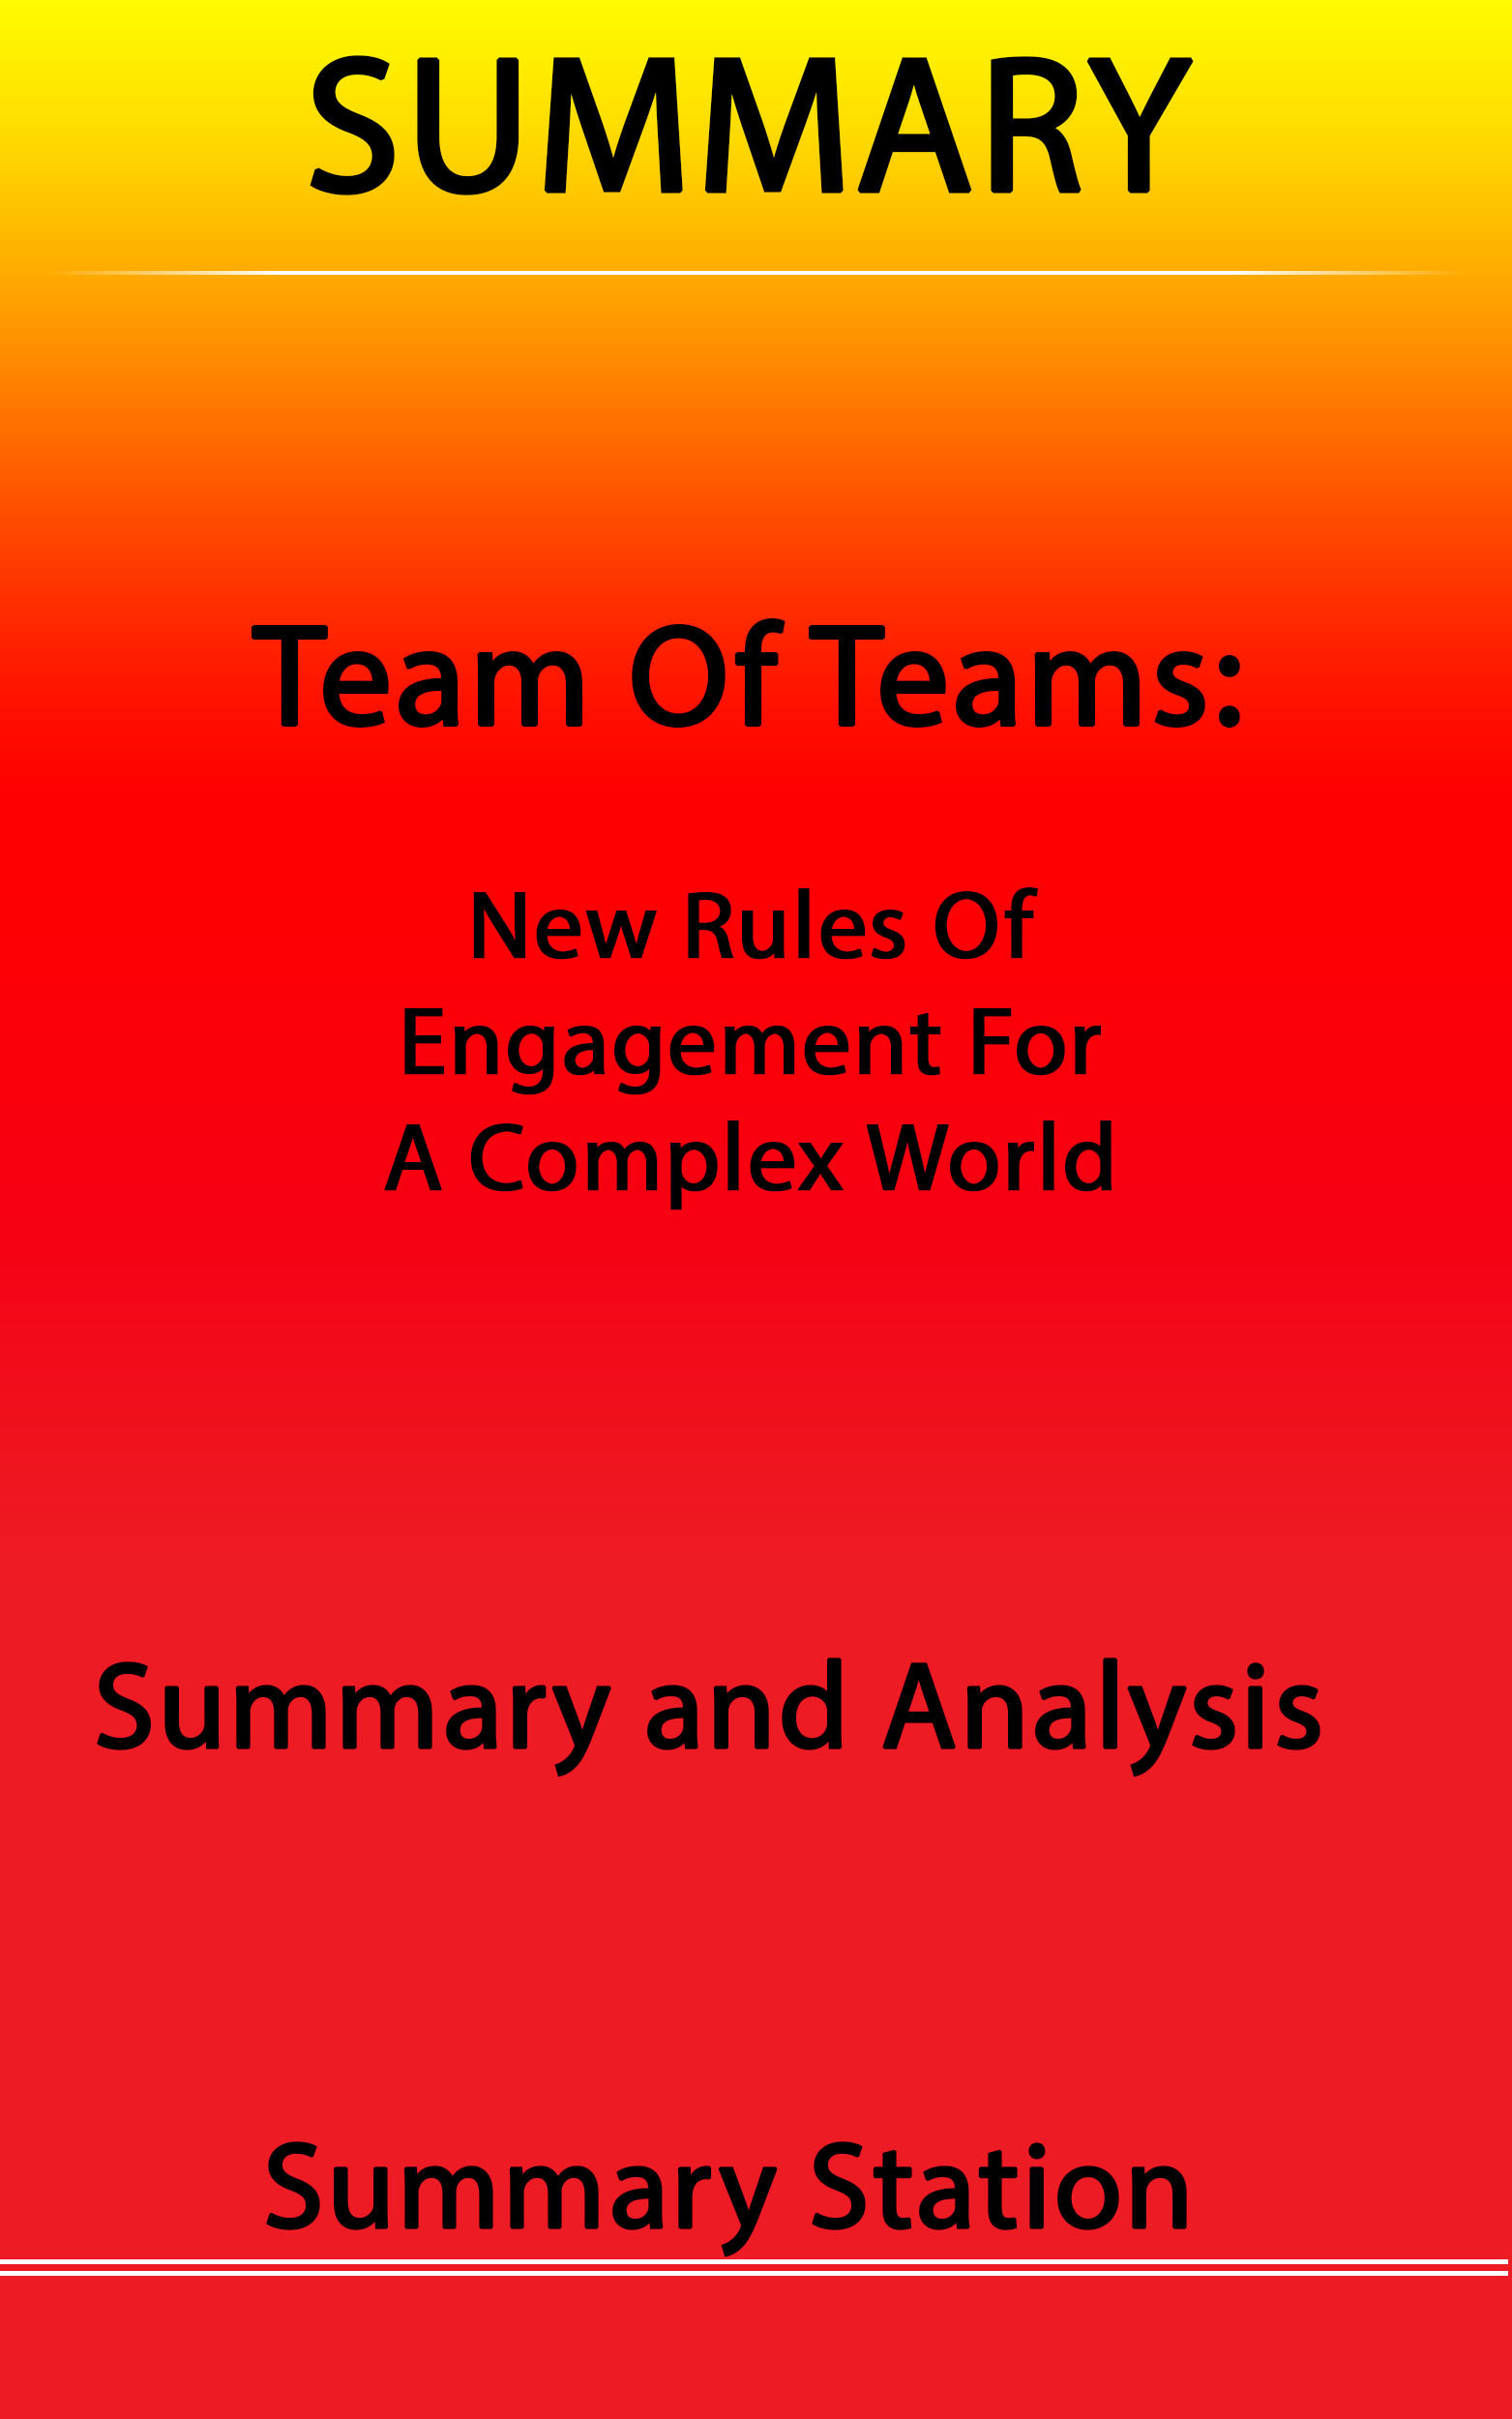 Team of Teams: New Rules of Engagement for A Complex World | Summary